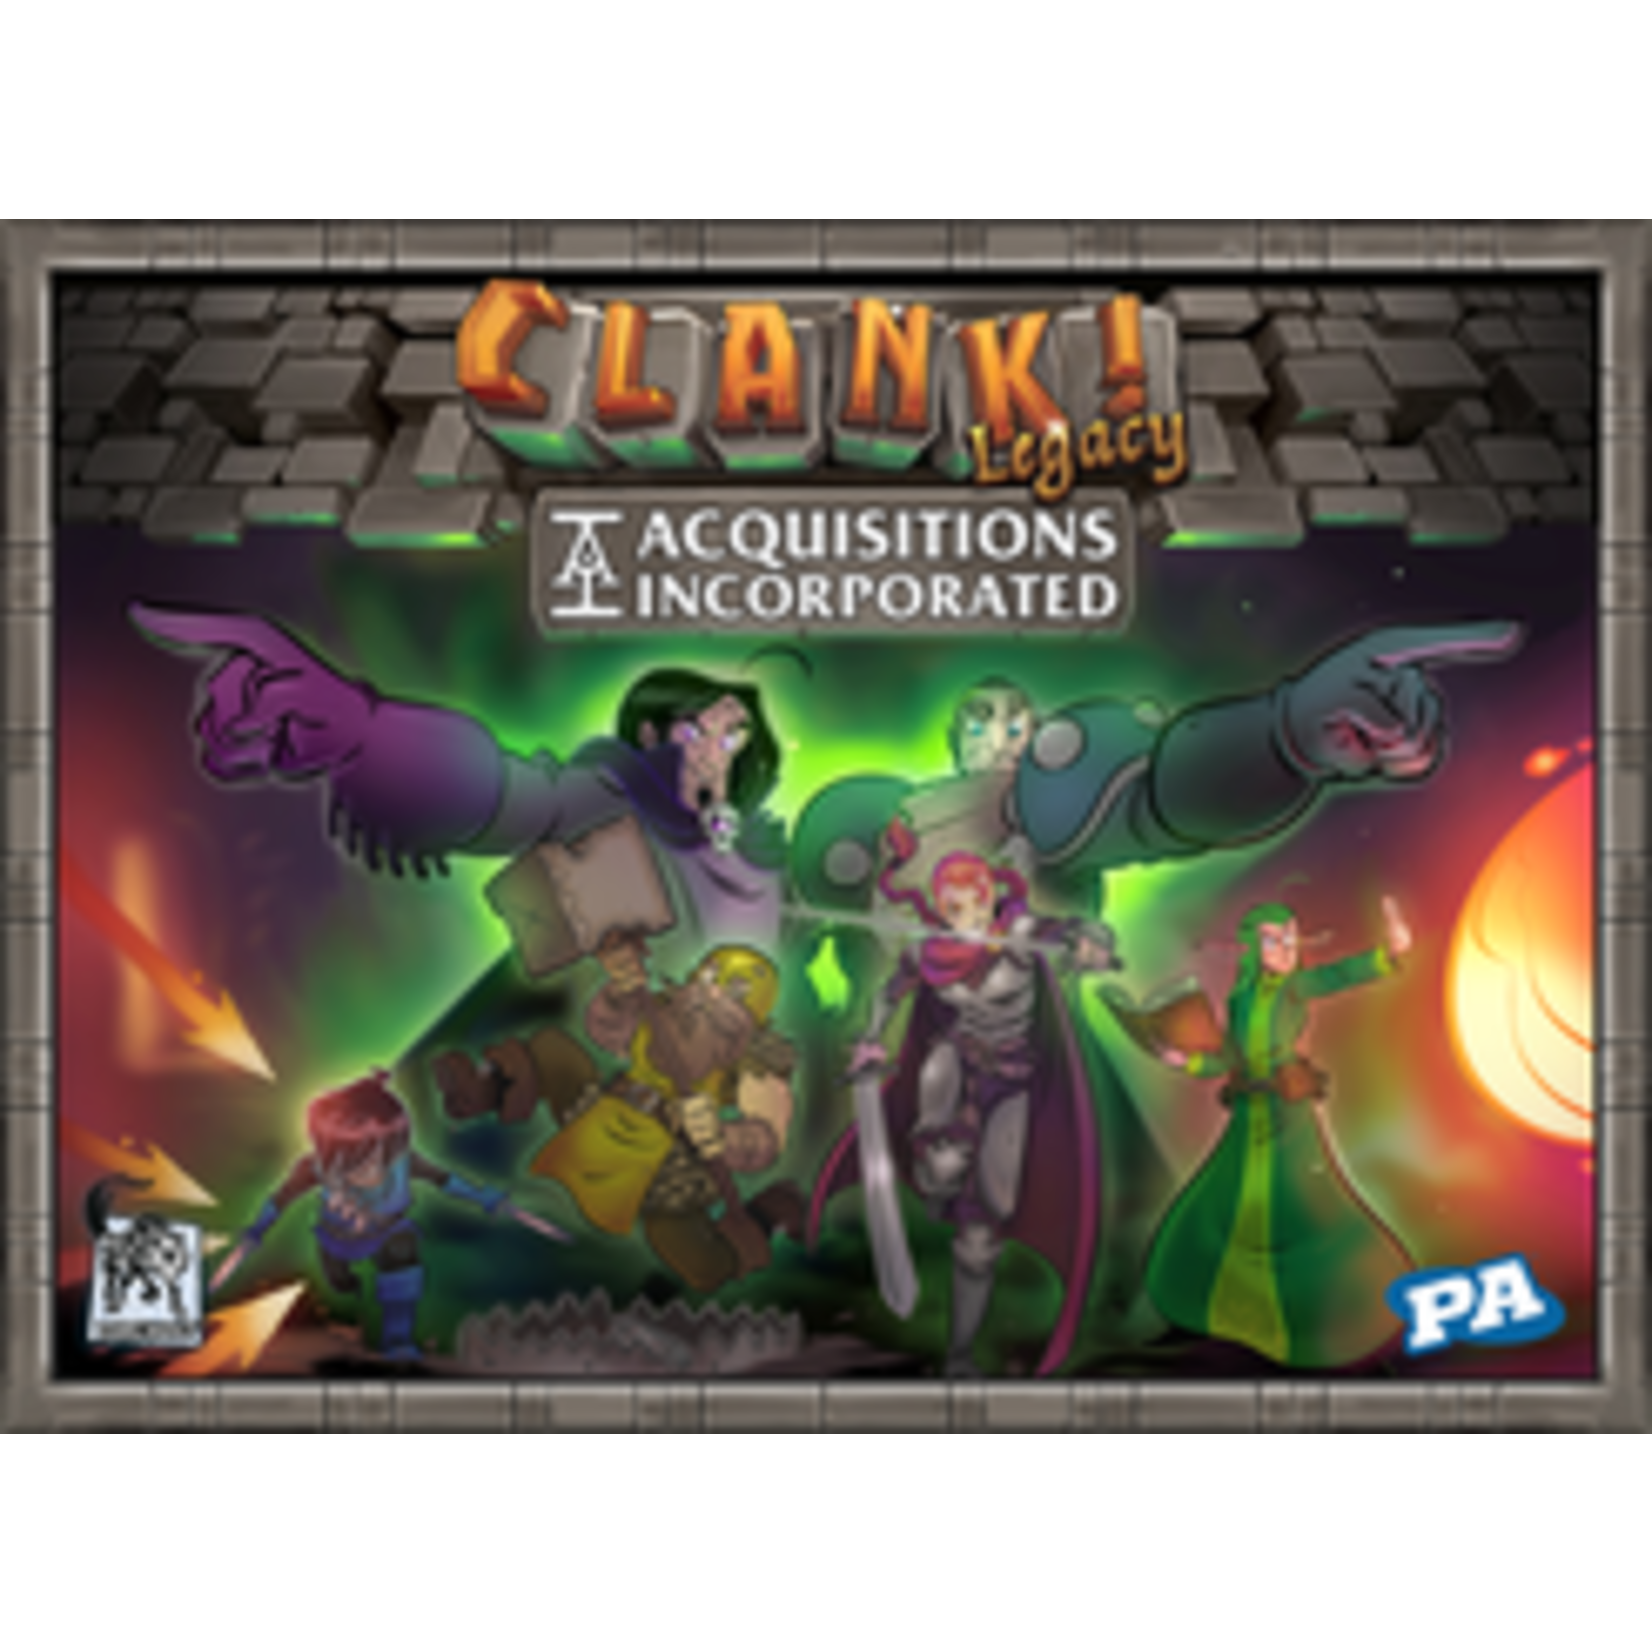 Clank! Legacy Acquisitions Incorporated Upper Managment Pack